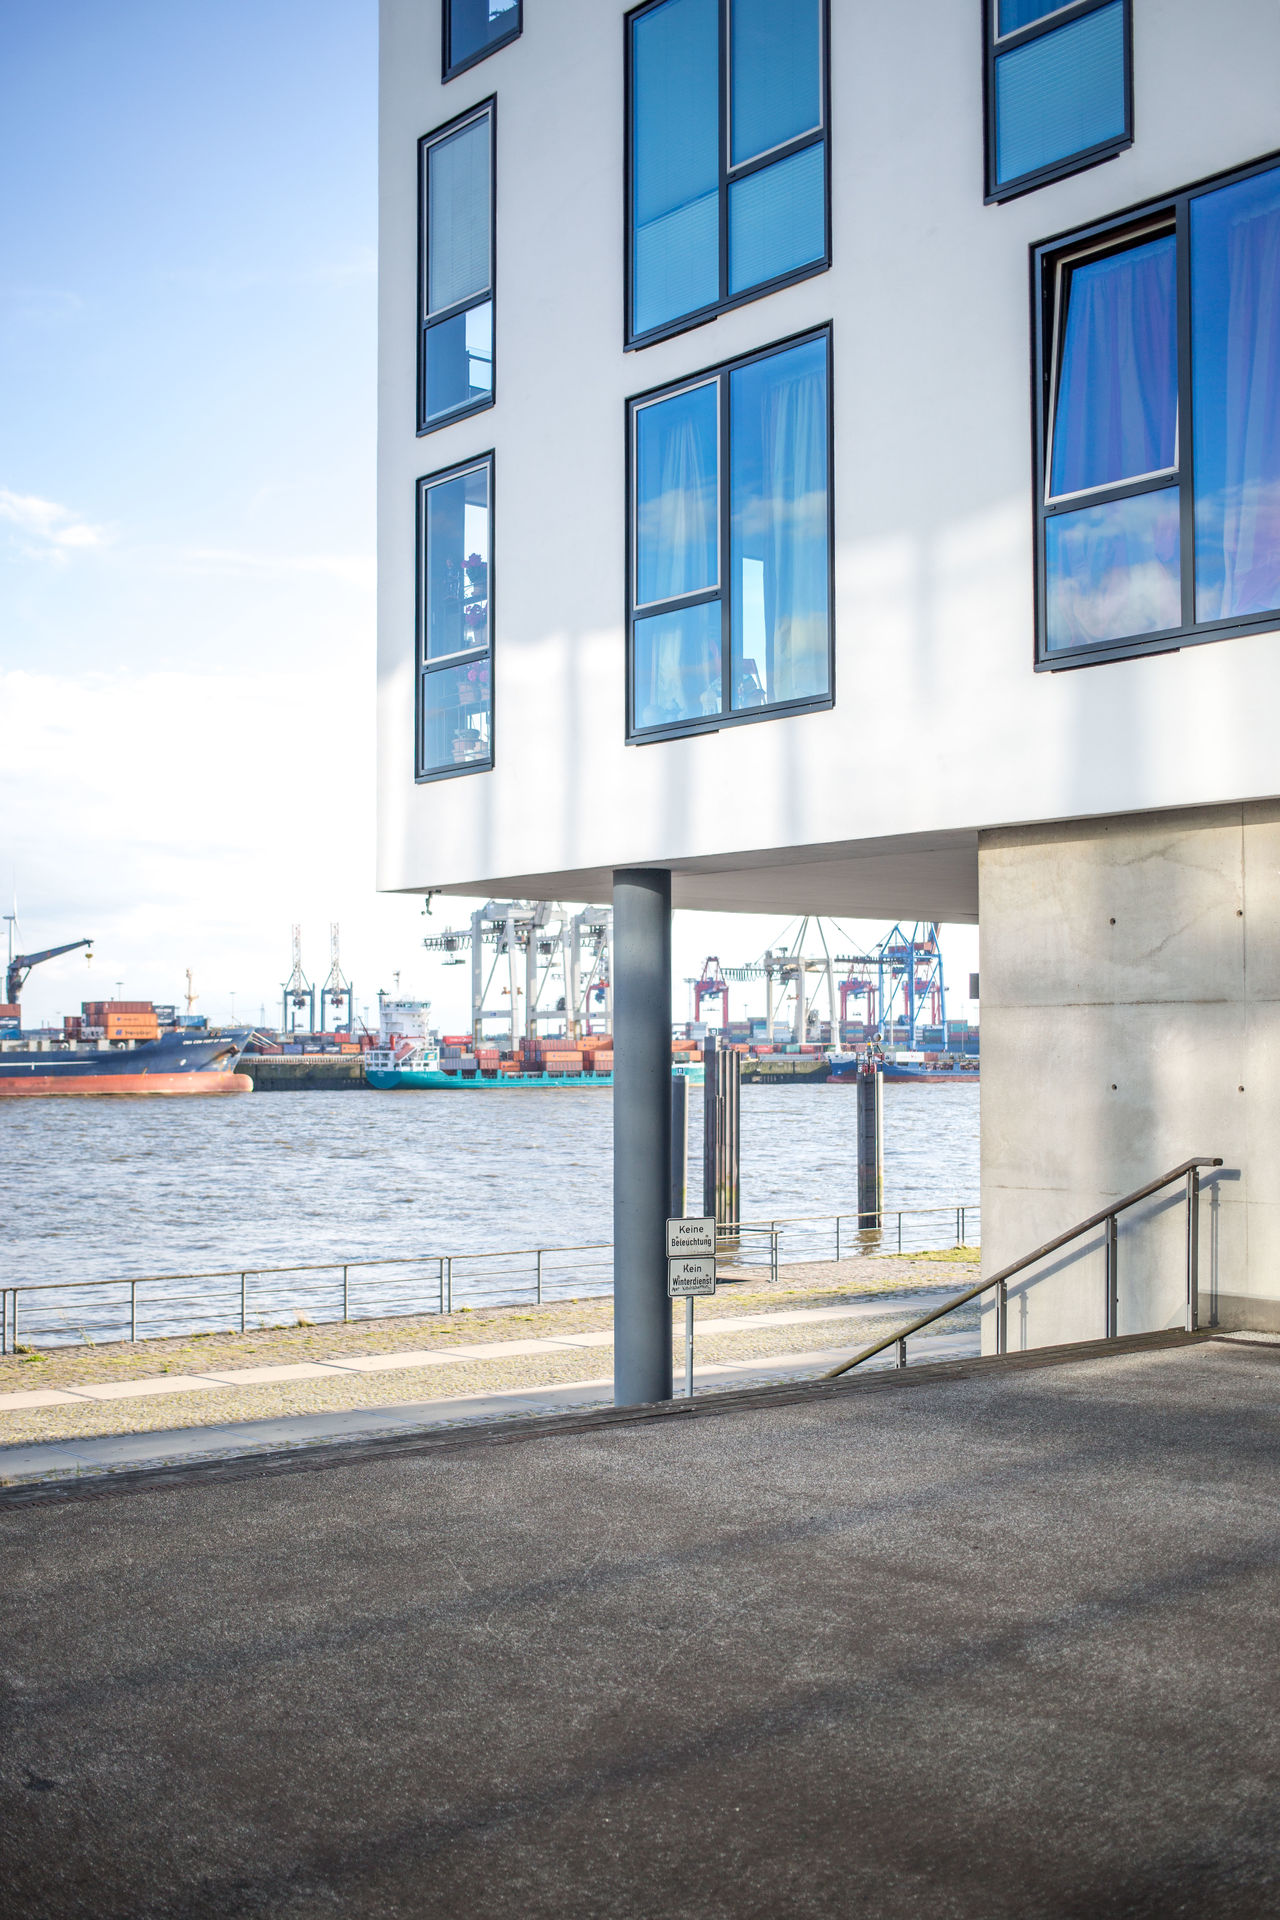 Architecture Blue Building Building Exterior Built Structure City City Life Cloud Cloud - Sky Container Ship Day Habor Hamburg Hamburg Harbour Modern Office Building Residential Building Ships Sky Water Windoes